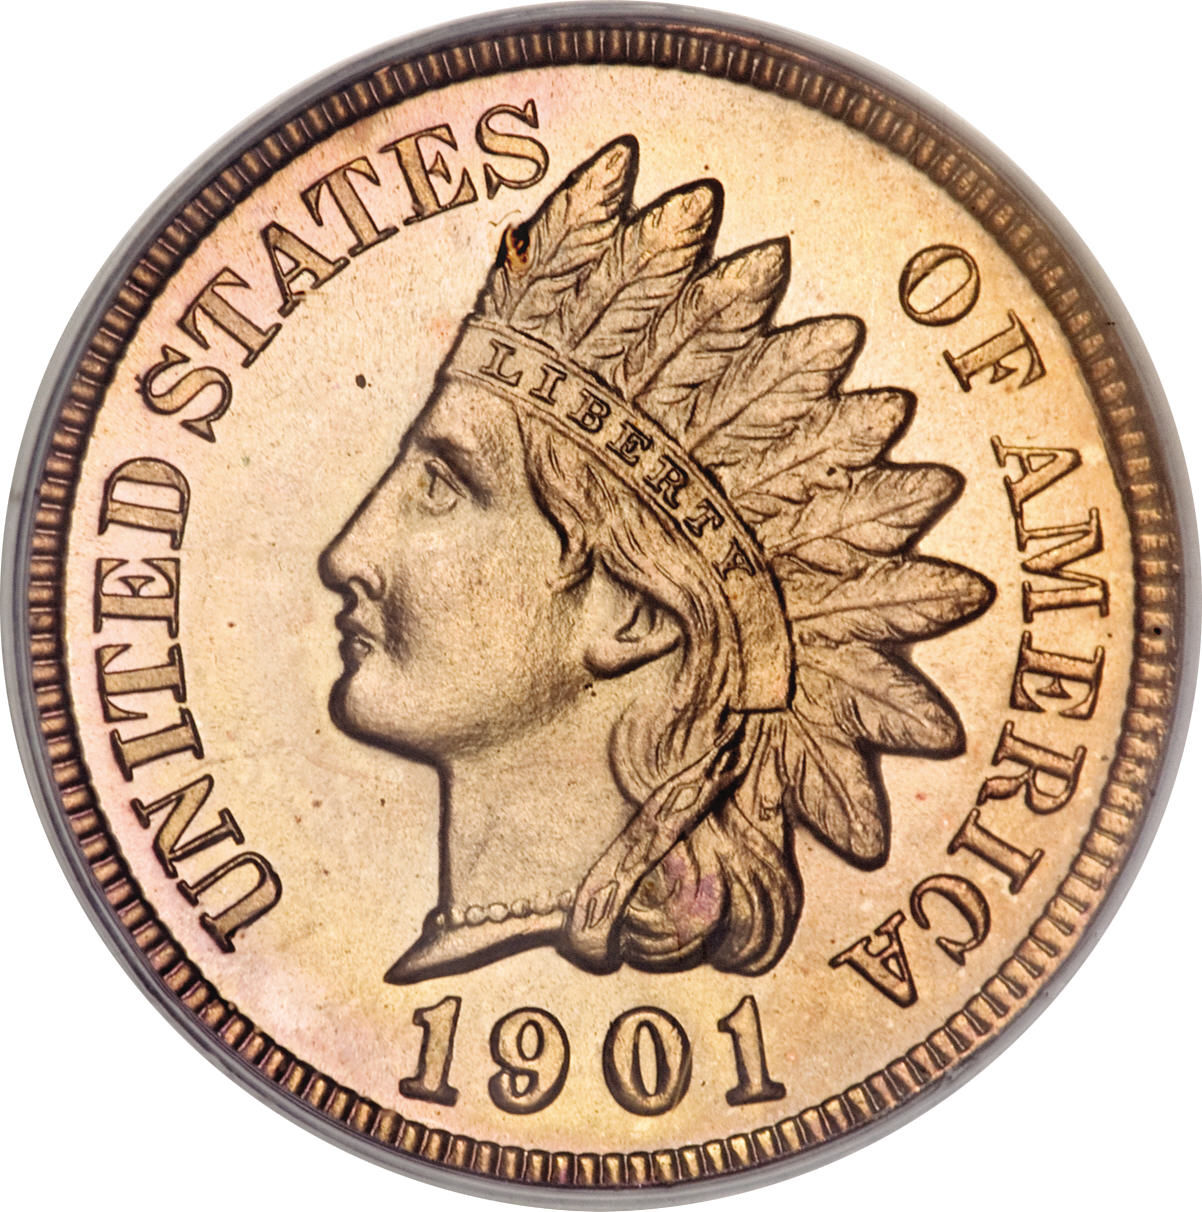 One Cent Indian Head Penny Value as well Relieve De America Norte Fotos in addition Blowhole Kiama New South Wales in addition India Flag together with World Time Zone Map. on america centered world map